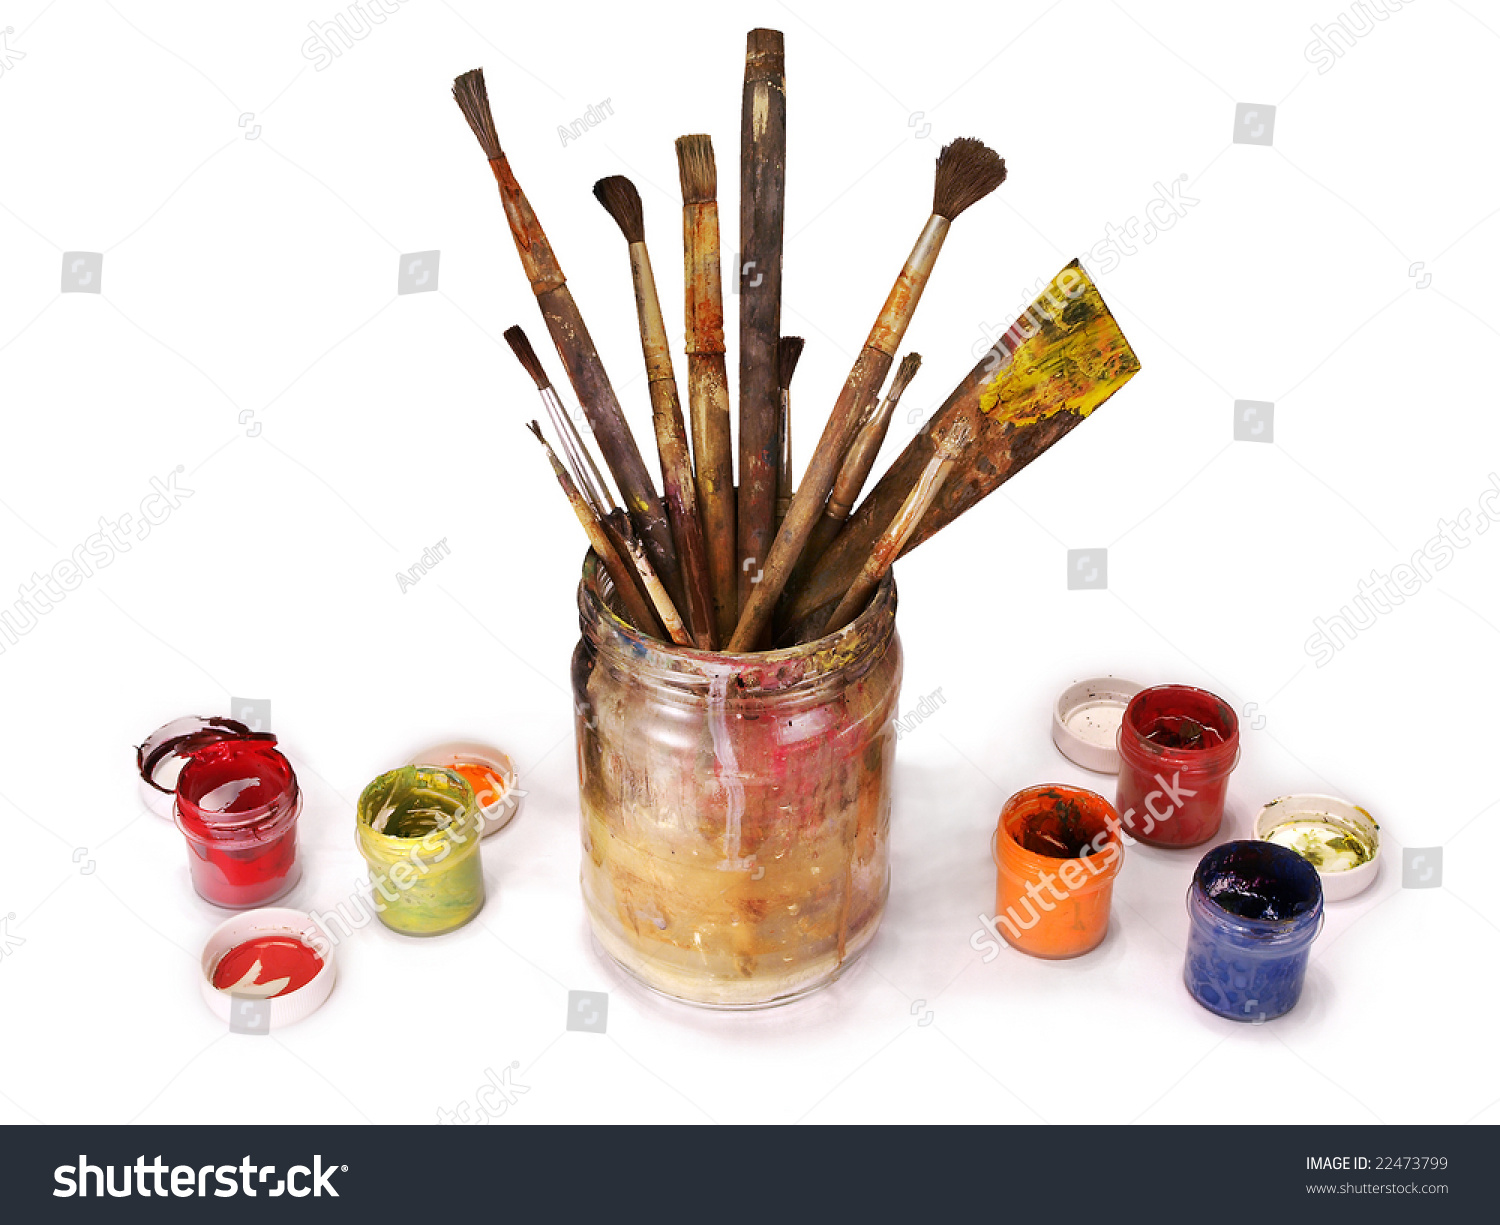 paint brushes in jar. old paint brushes in a glass jar with dried